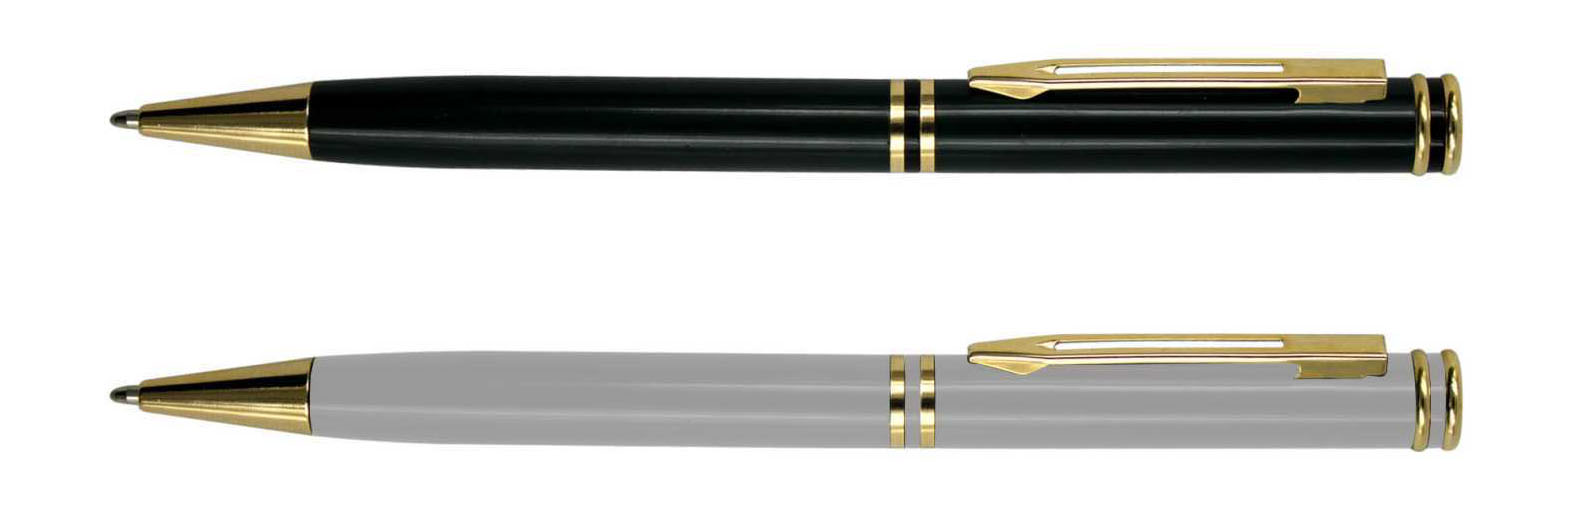 golden part Corporate souvenir metal ballpoint pen